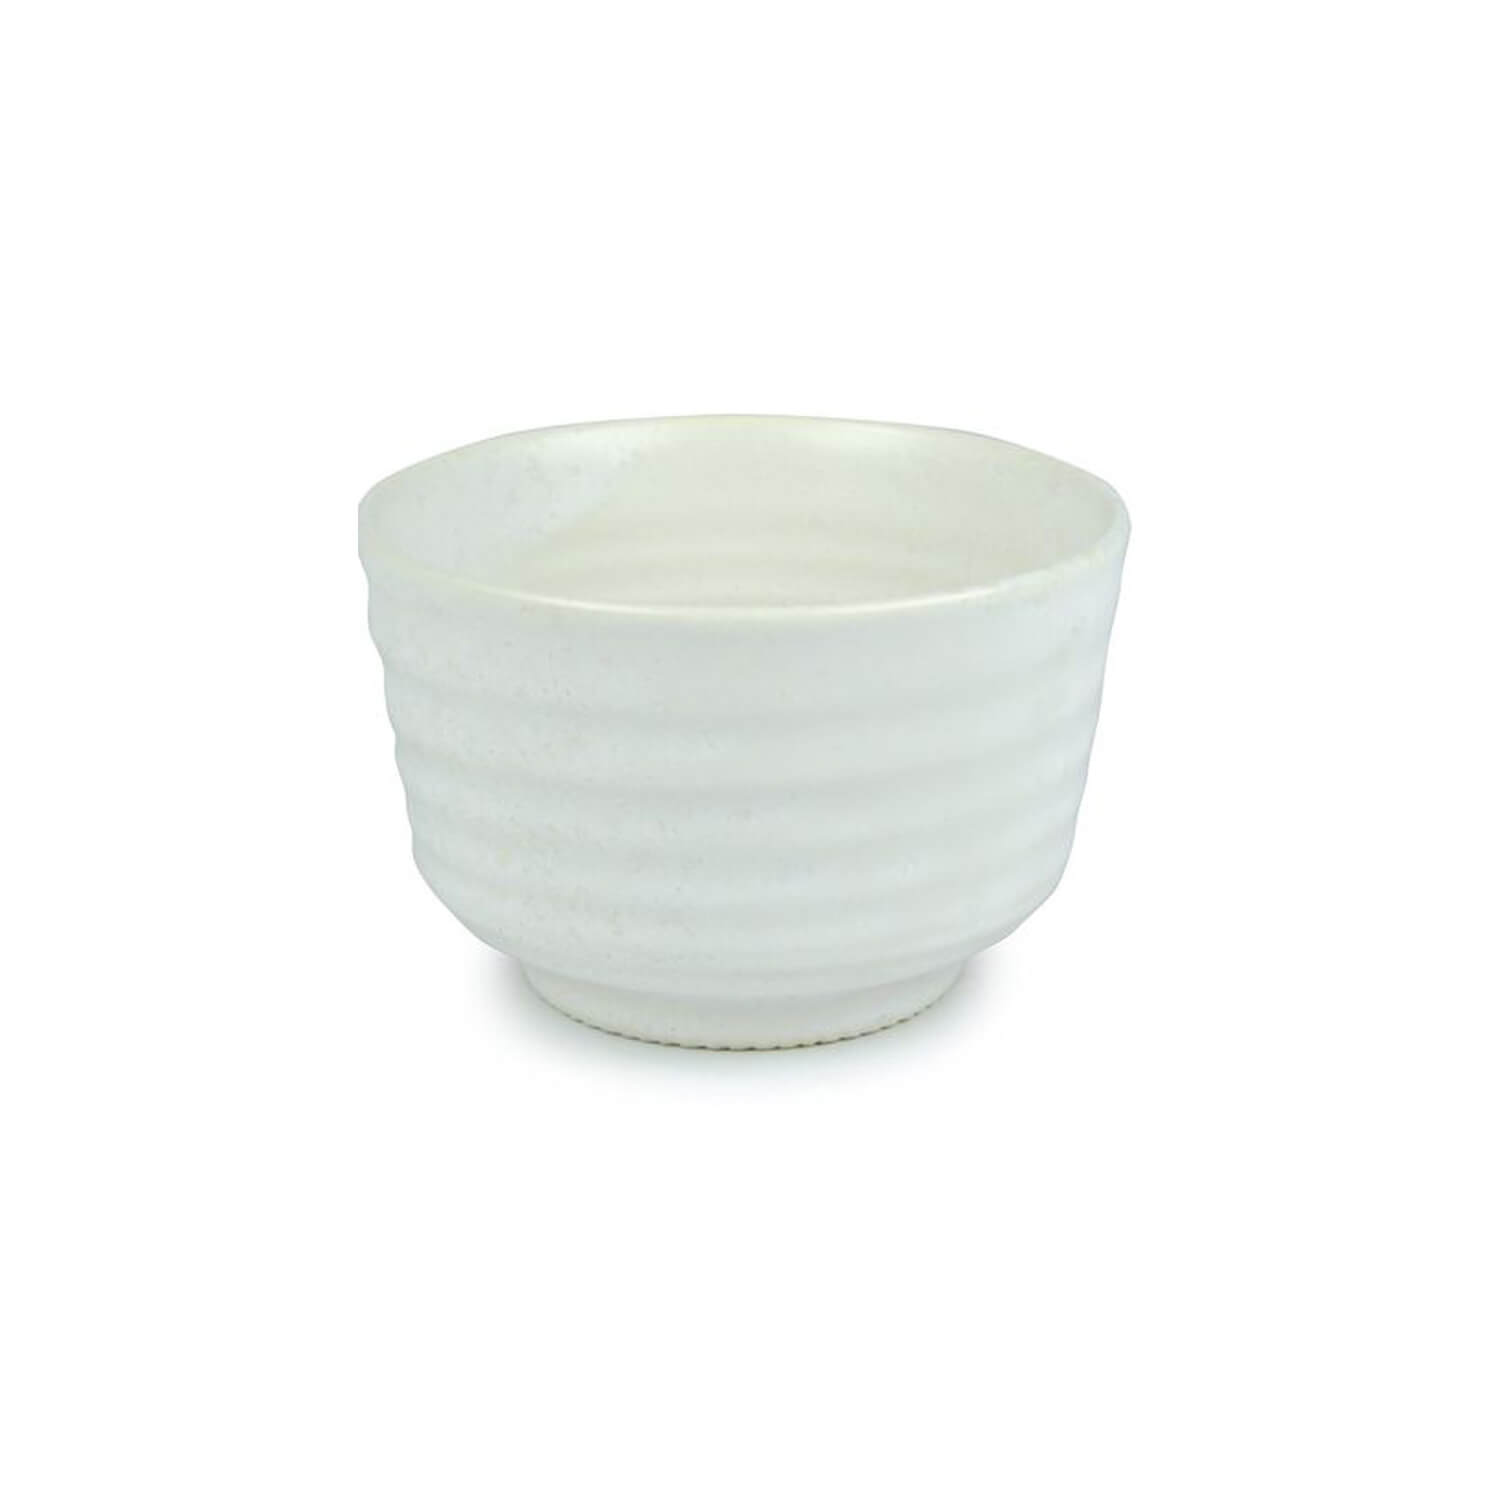 Original Japan matcha bowl - Shiro